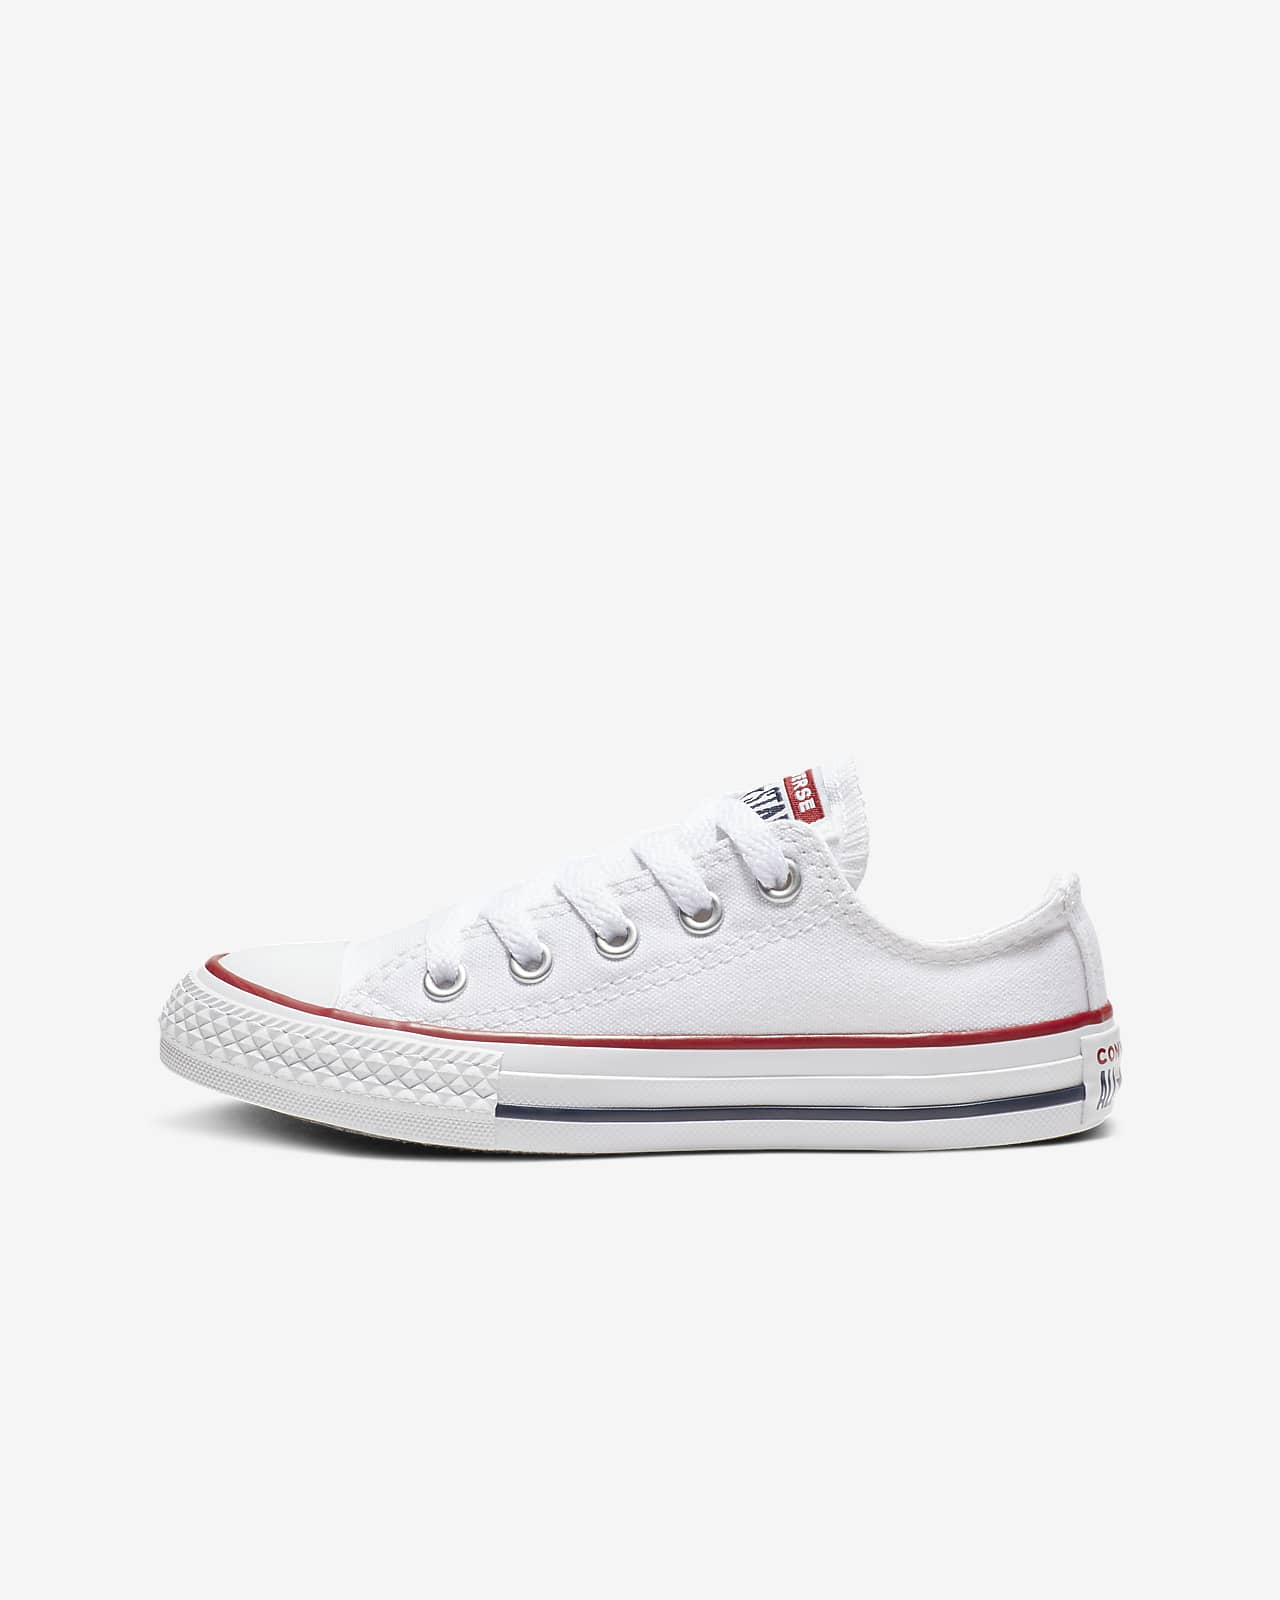 Converse Chuck Taylor All Star Low Top (10.5c-3y) Little Kids' Shoe